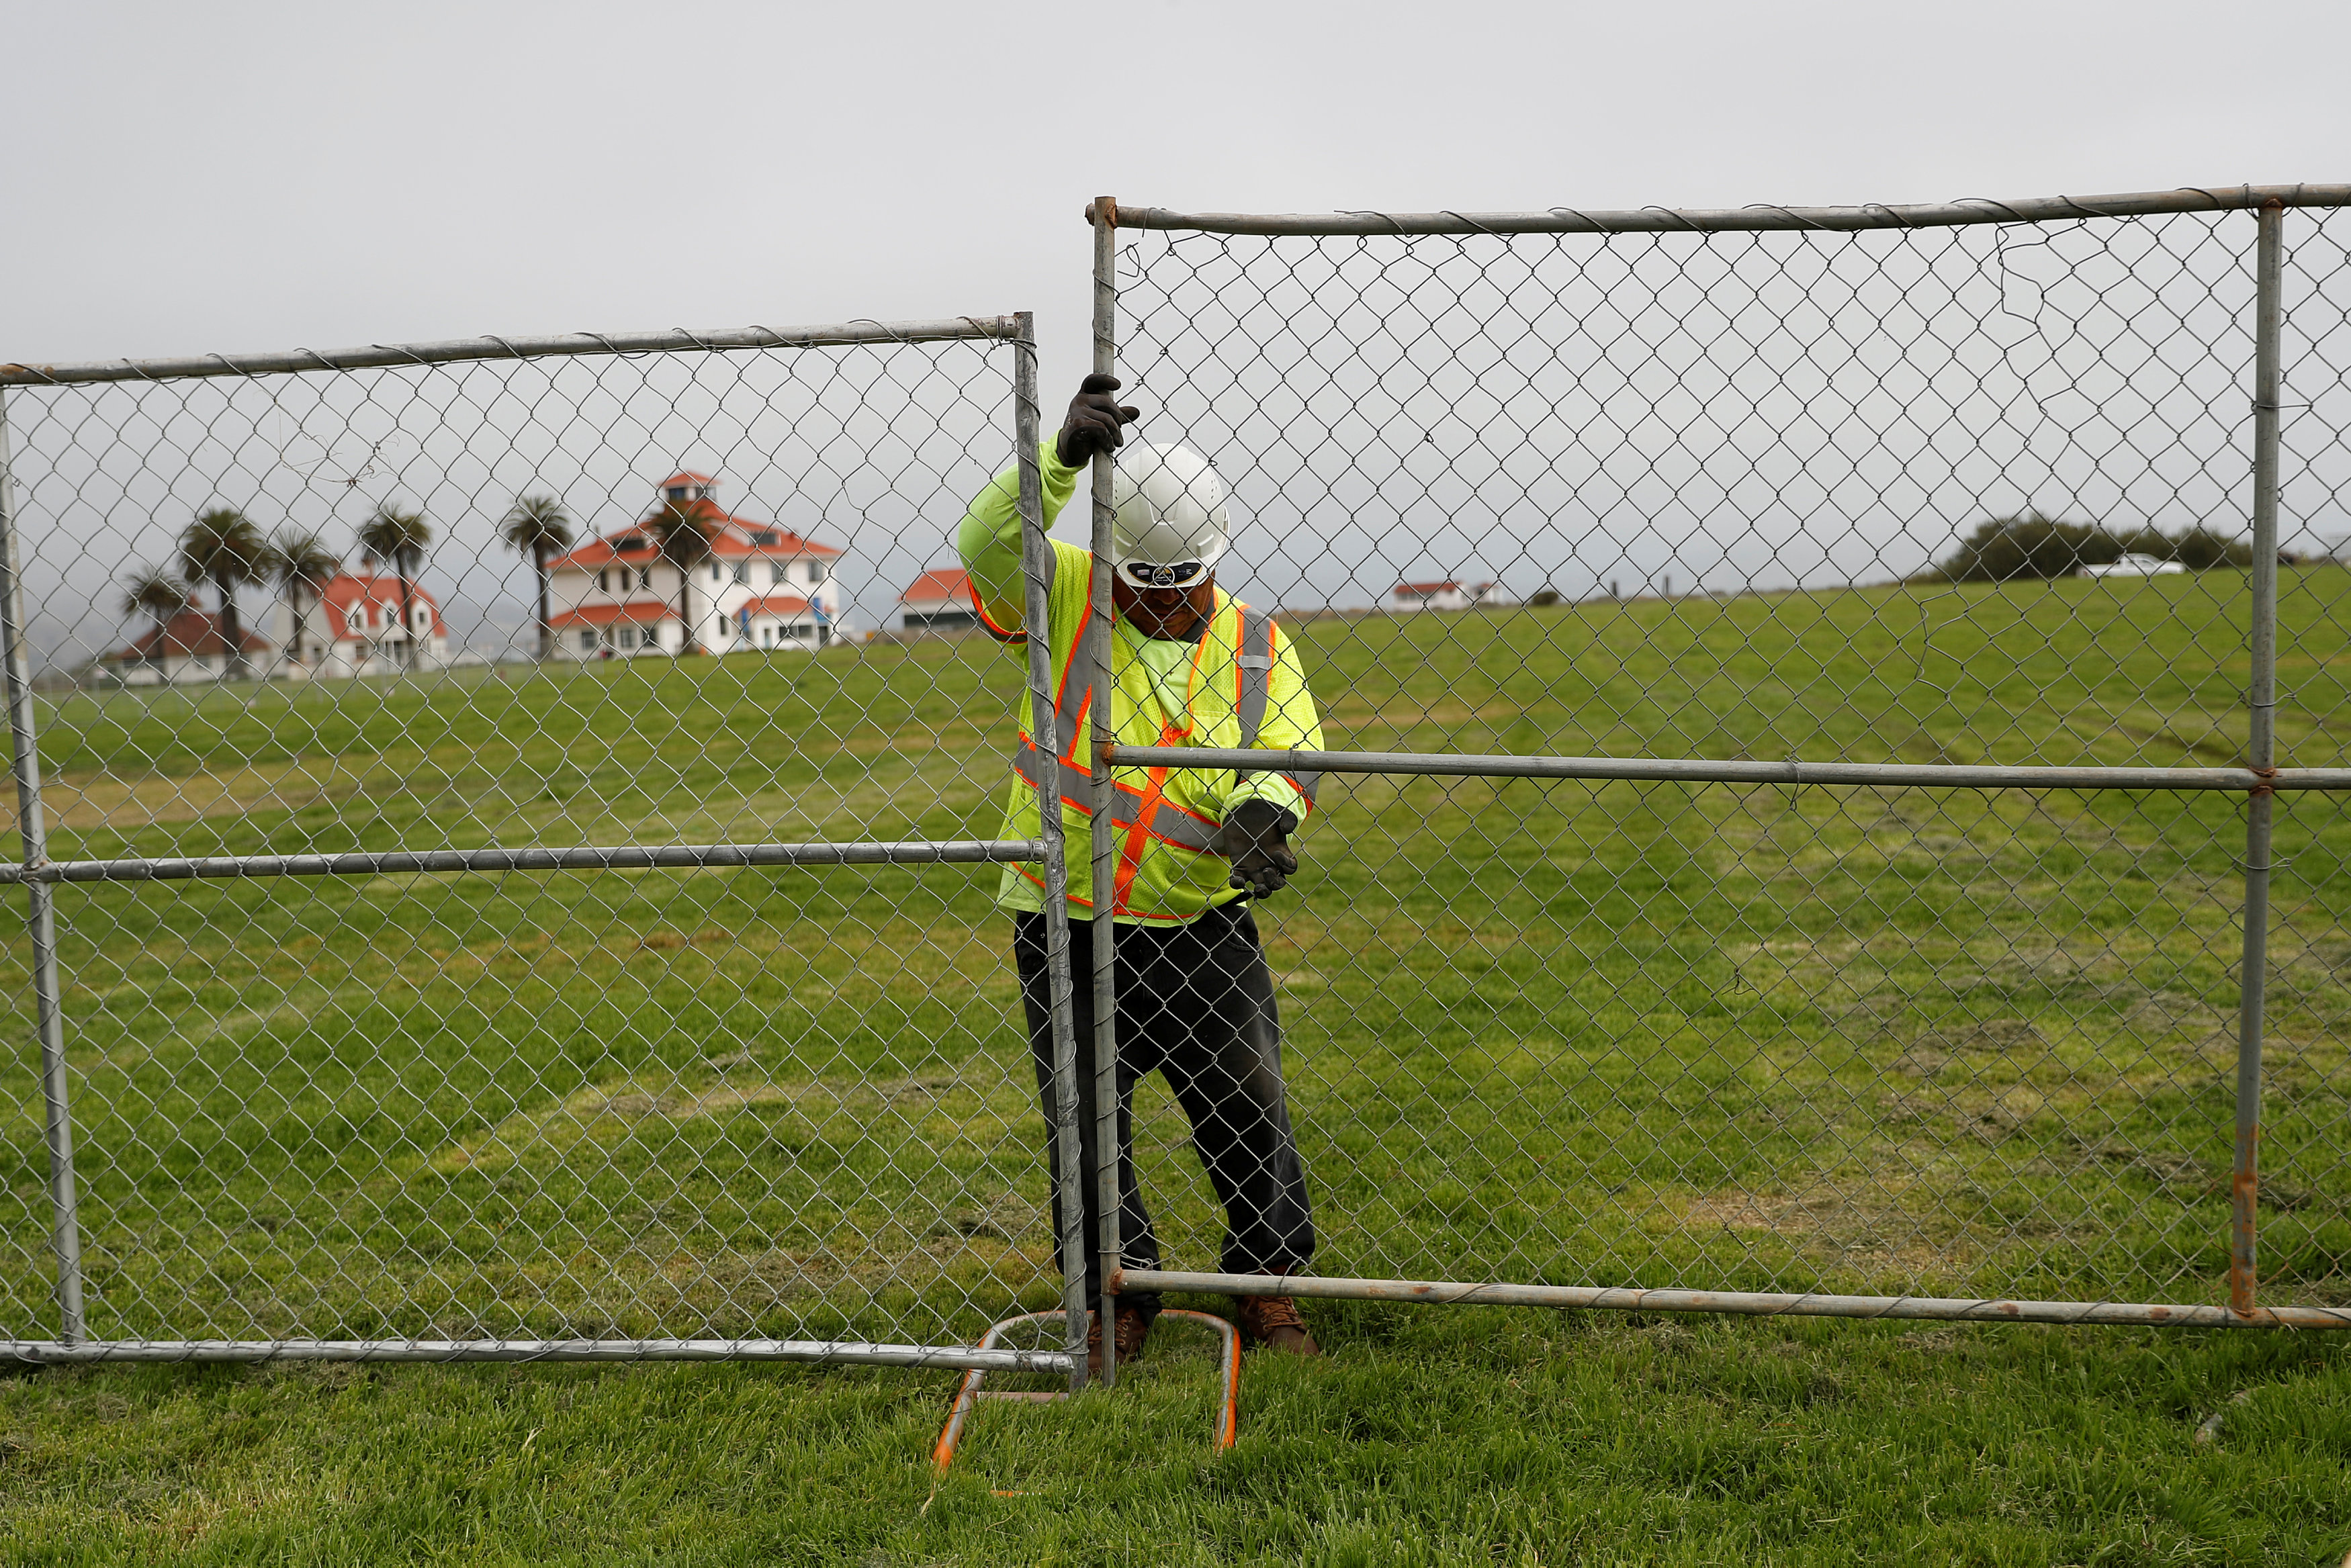 A worker installs a fence at Crissy Field in anticipation of Saturday's Patriot Prayer rally and counter demonstration in San Francisco, California, U.S. August 25, 2017. REUTERS/Stephen Lam